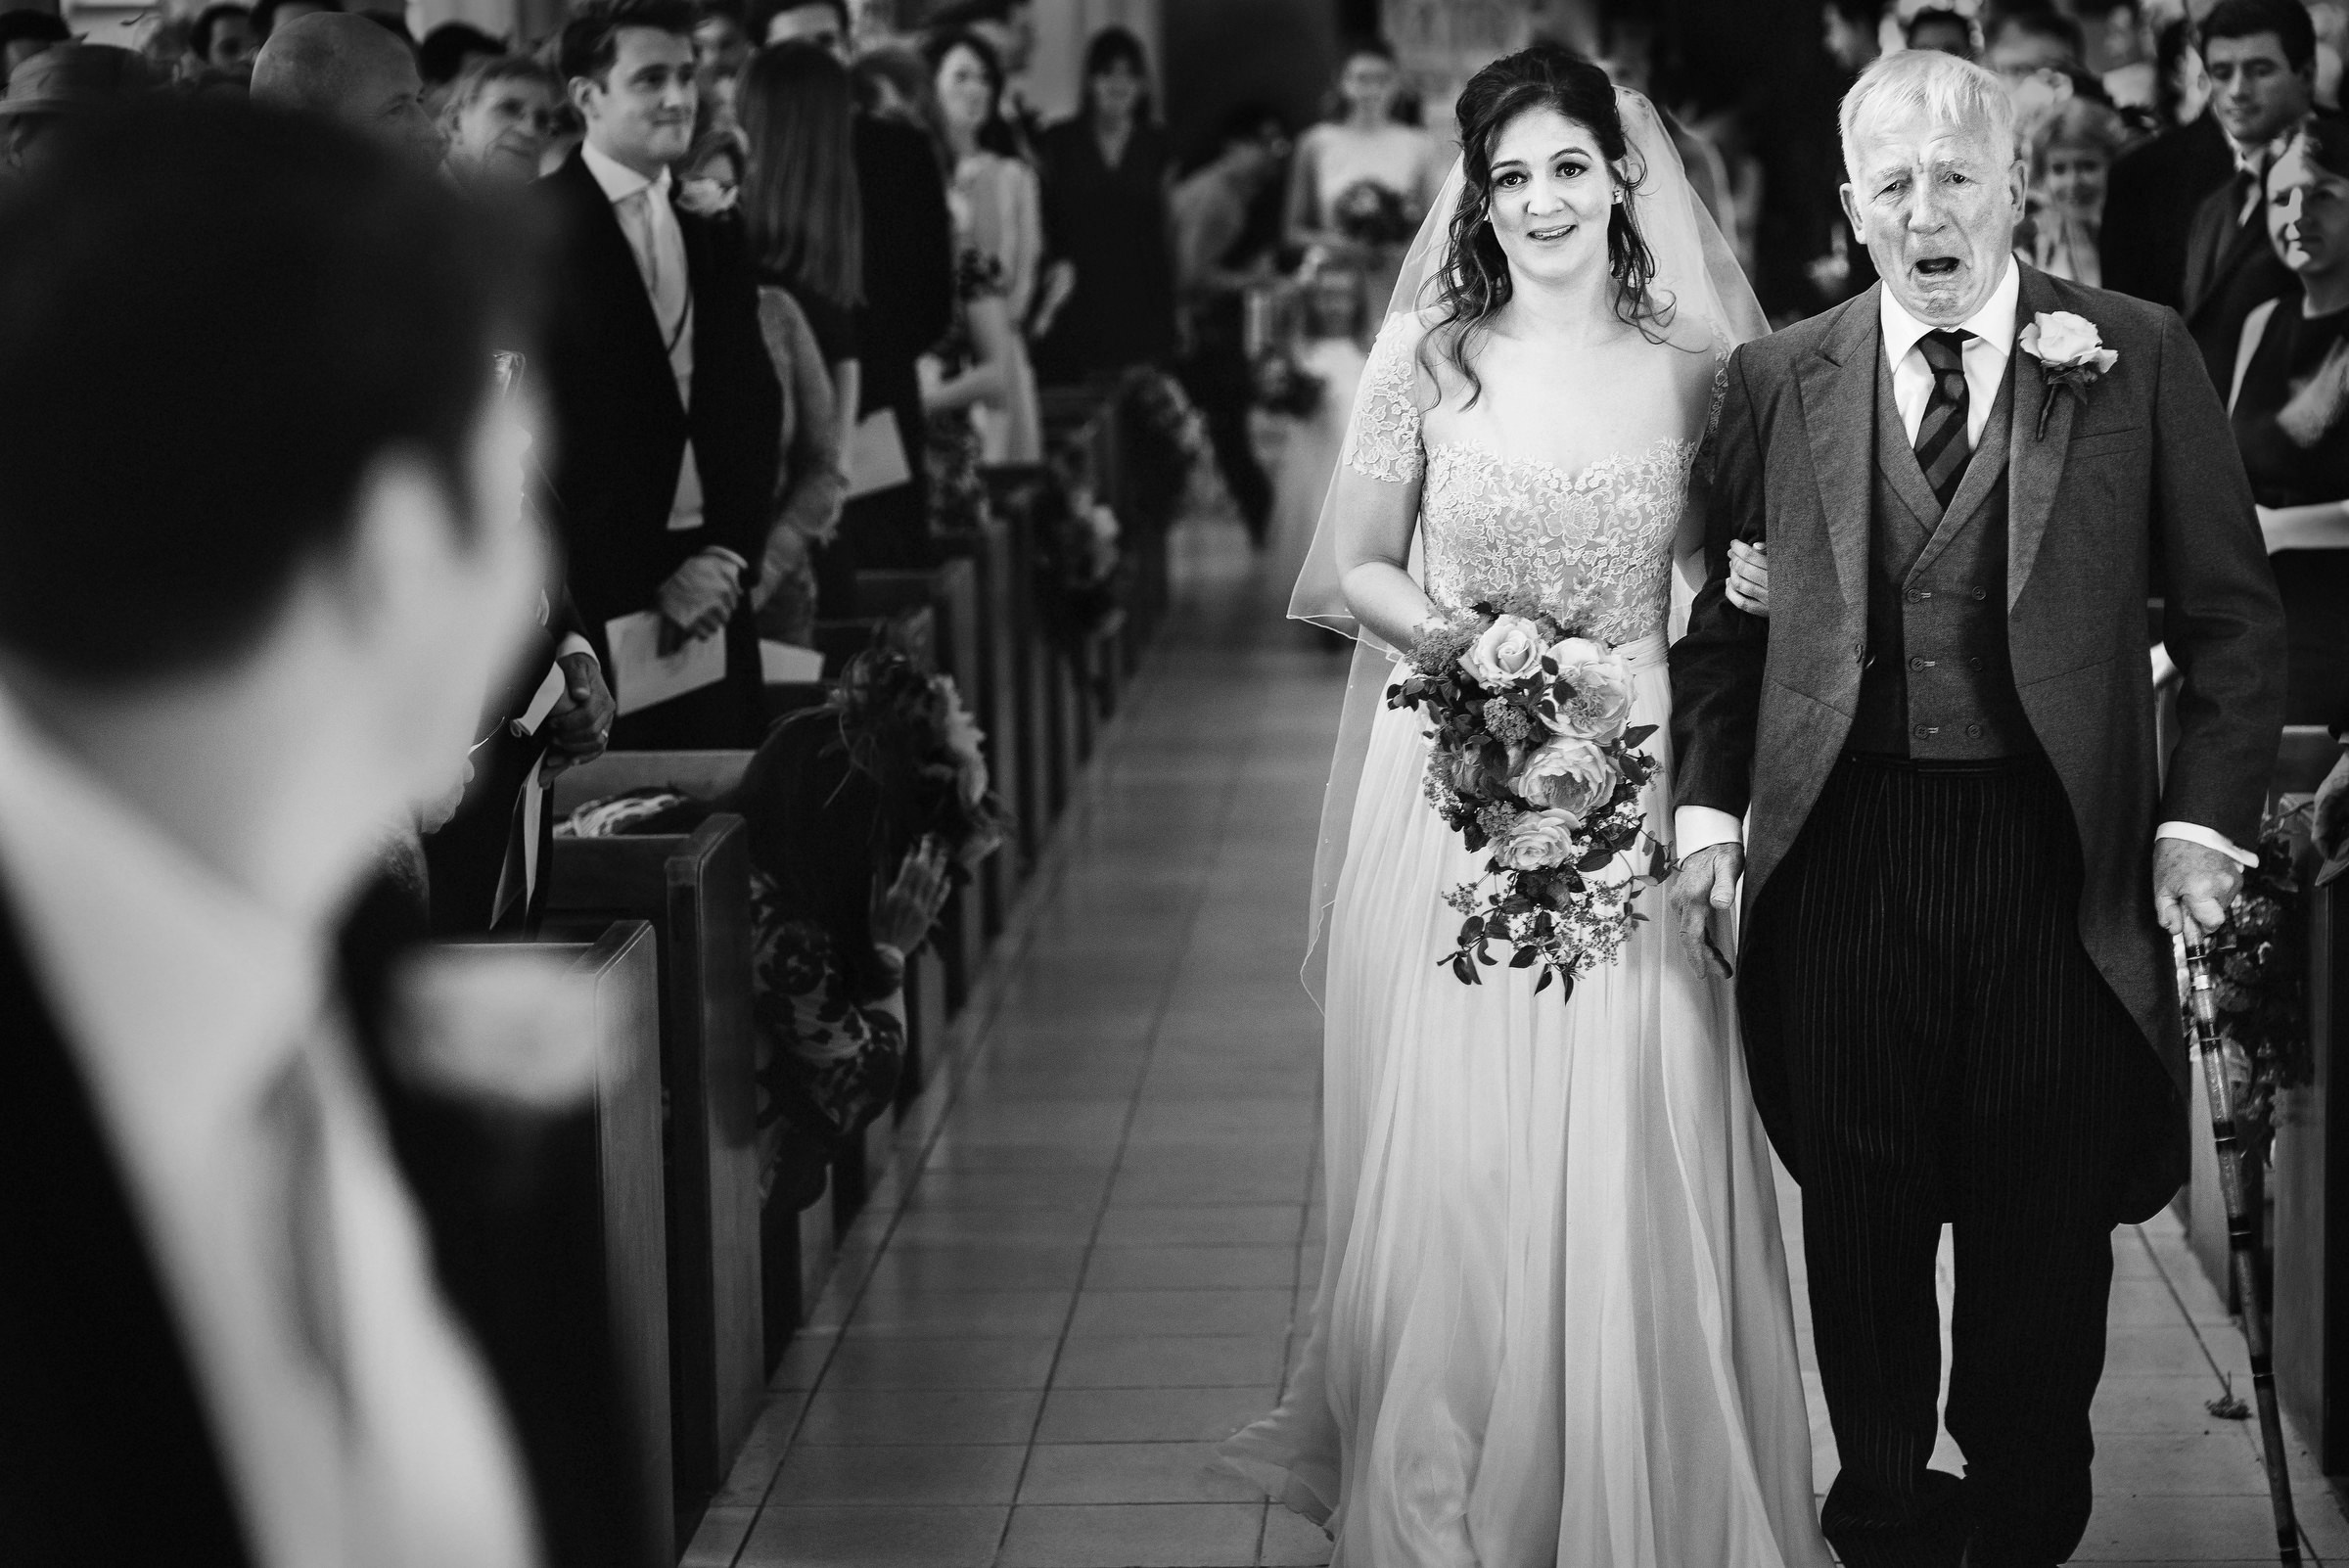 Granfather breaks down in tears as he delivers bride to the altar - photo by Andy Gaines - London